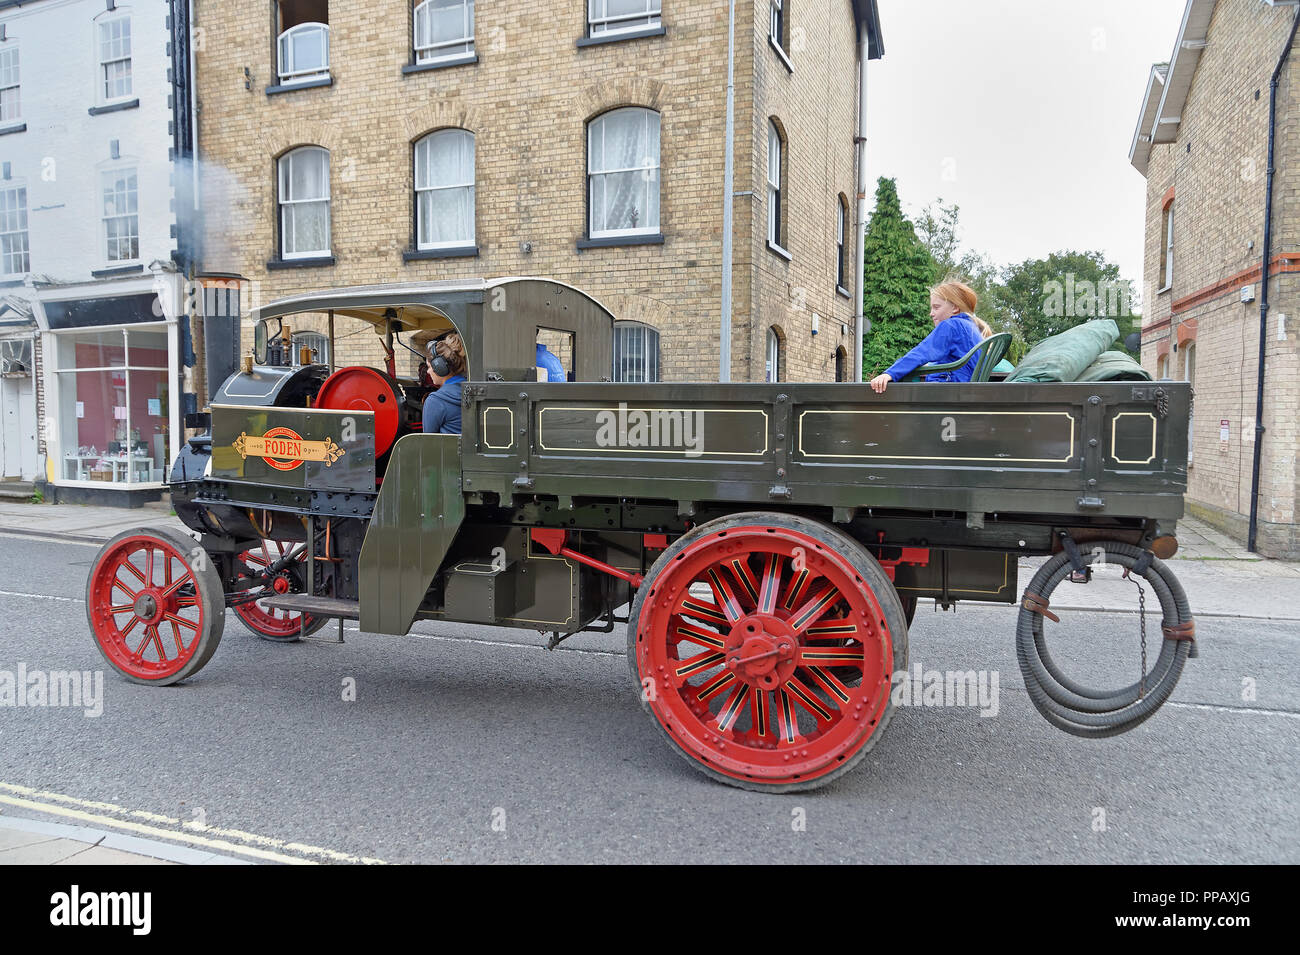 1907 Foden Steam Wagon named Isabella on a UK street - Stock Image